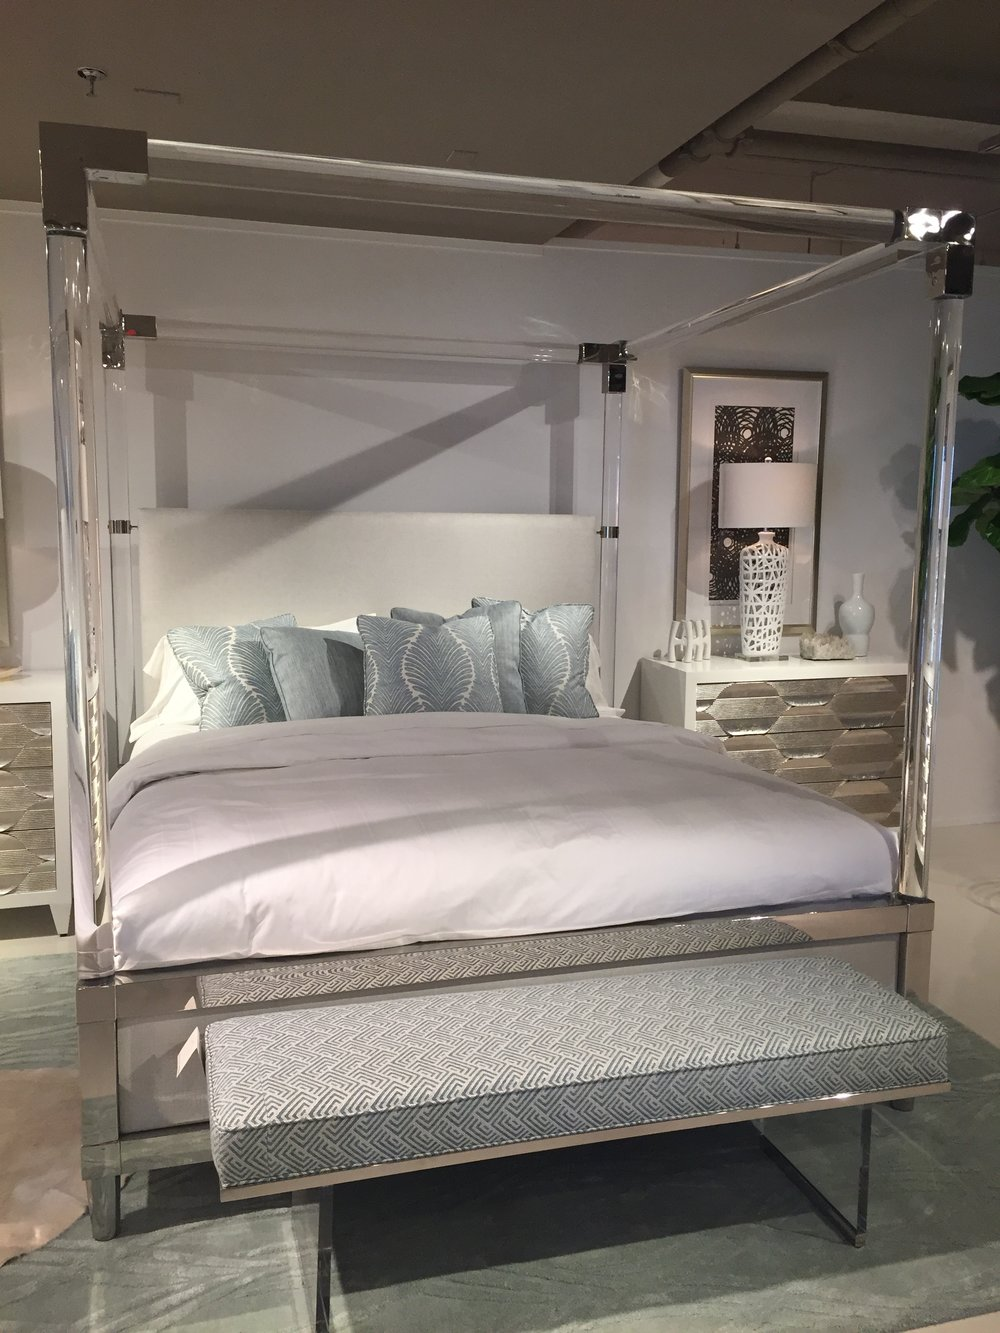 Serenity please!  This masterpiece caught my eye immediately at the Bernhardt Showroom!  The bed actually won an award at HPMKT!  Gorgeous!